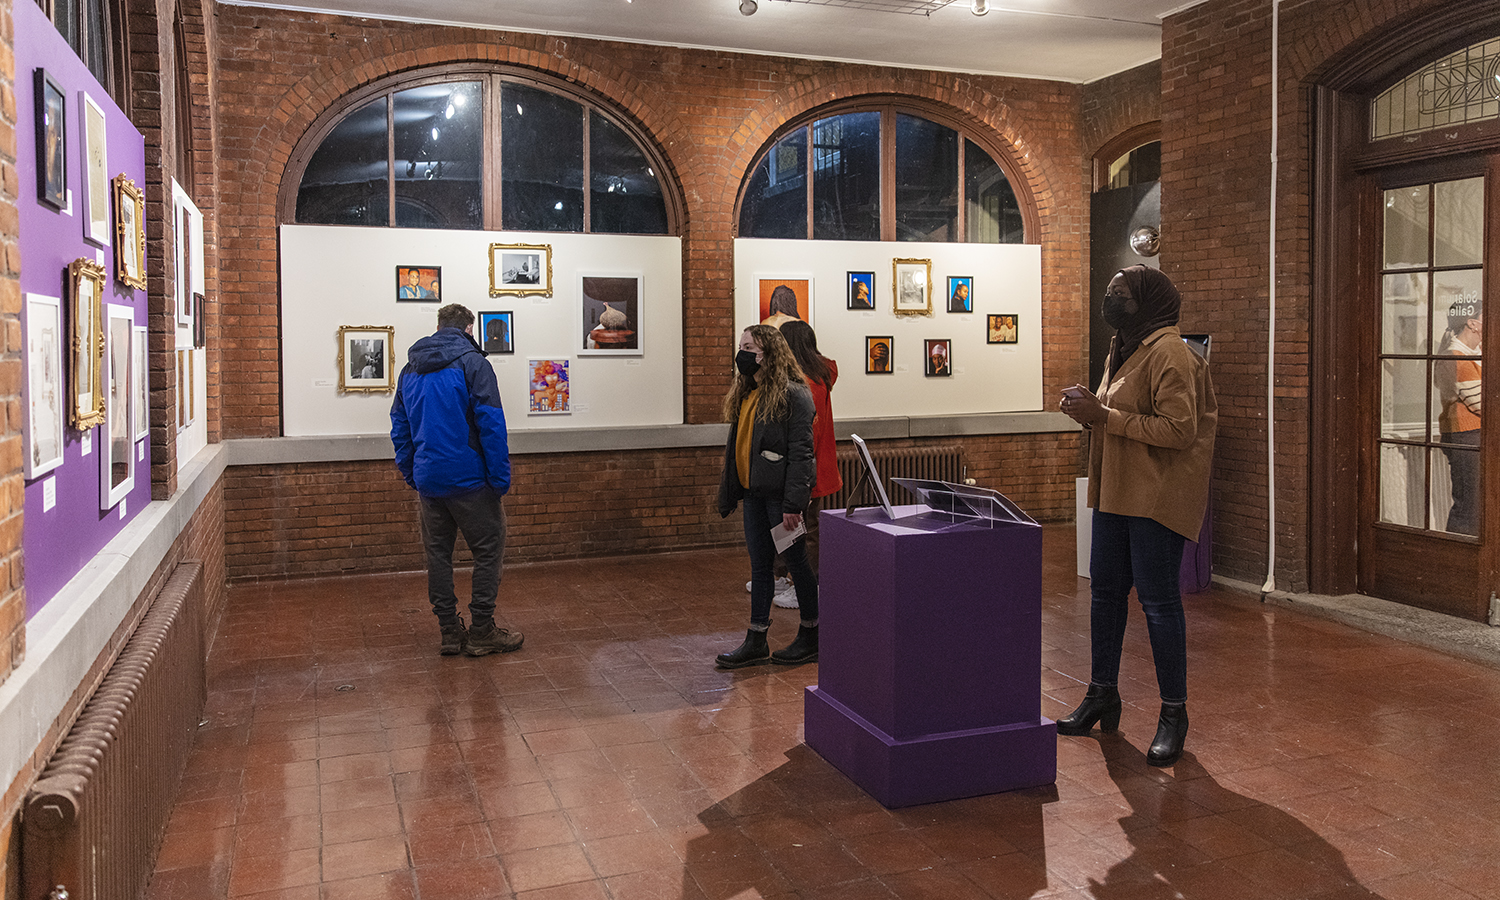 Better than Good and Hair Stories Untold have been curated by Hope Lee (WS '22) and Faithe Bey (WS'21). Please join us in honoring their hard work and in appreciating the wealth of incredible art on display. There are over 80 works of art ranging from sculpture, photography, digital collage, and film.